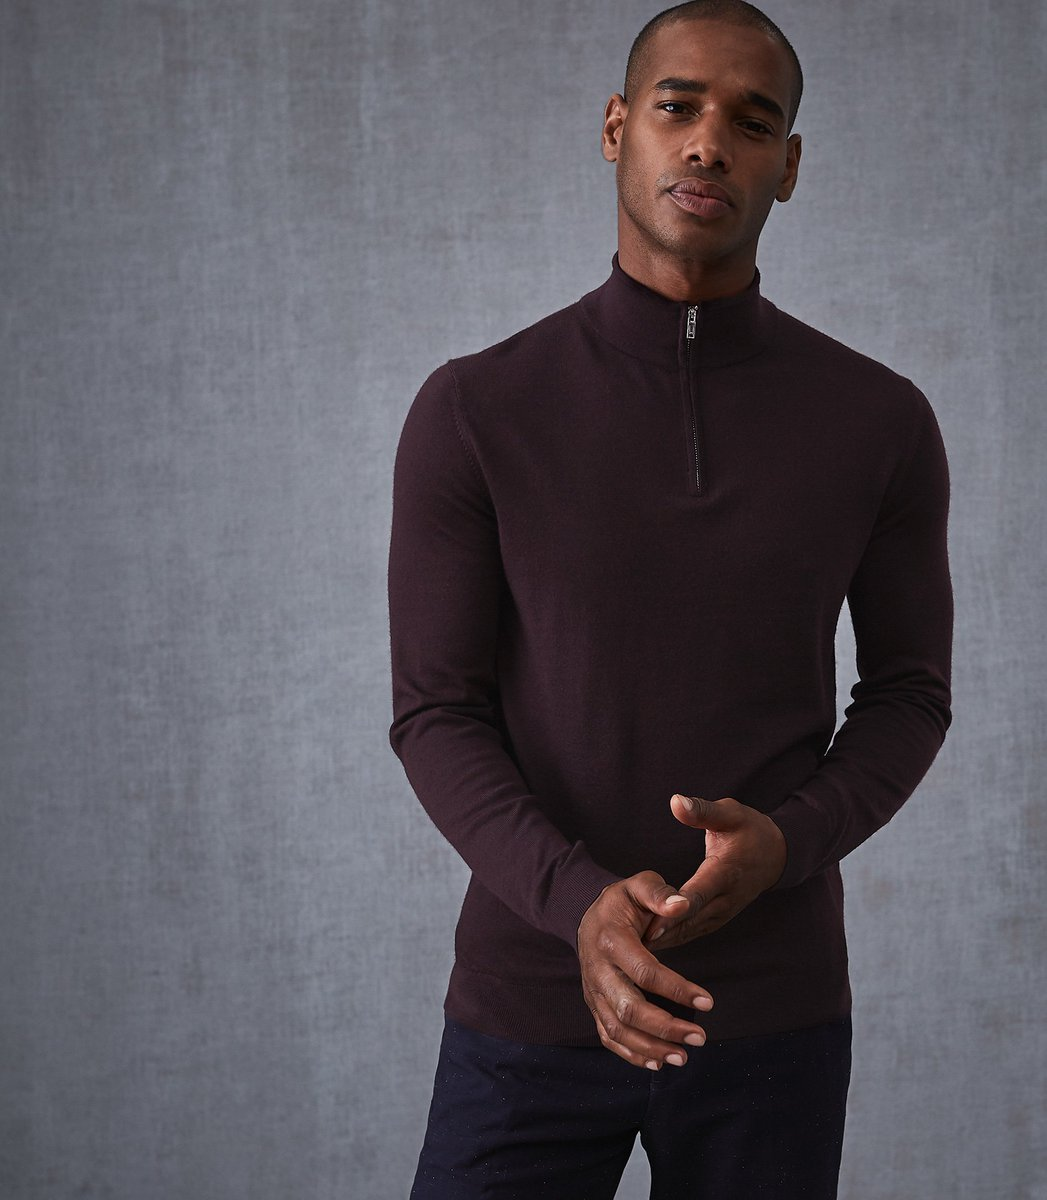 A change of pace from the merino wool crew neck, try the Blackhall zip-up this season. https://t.co/98R91VQwW3